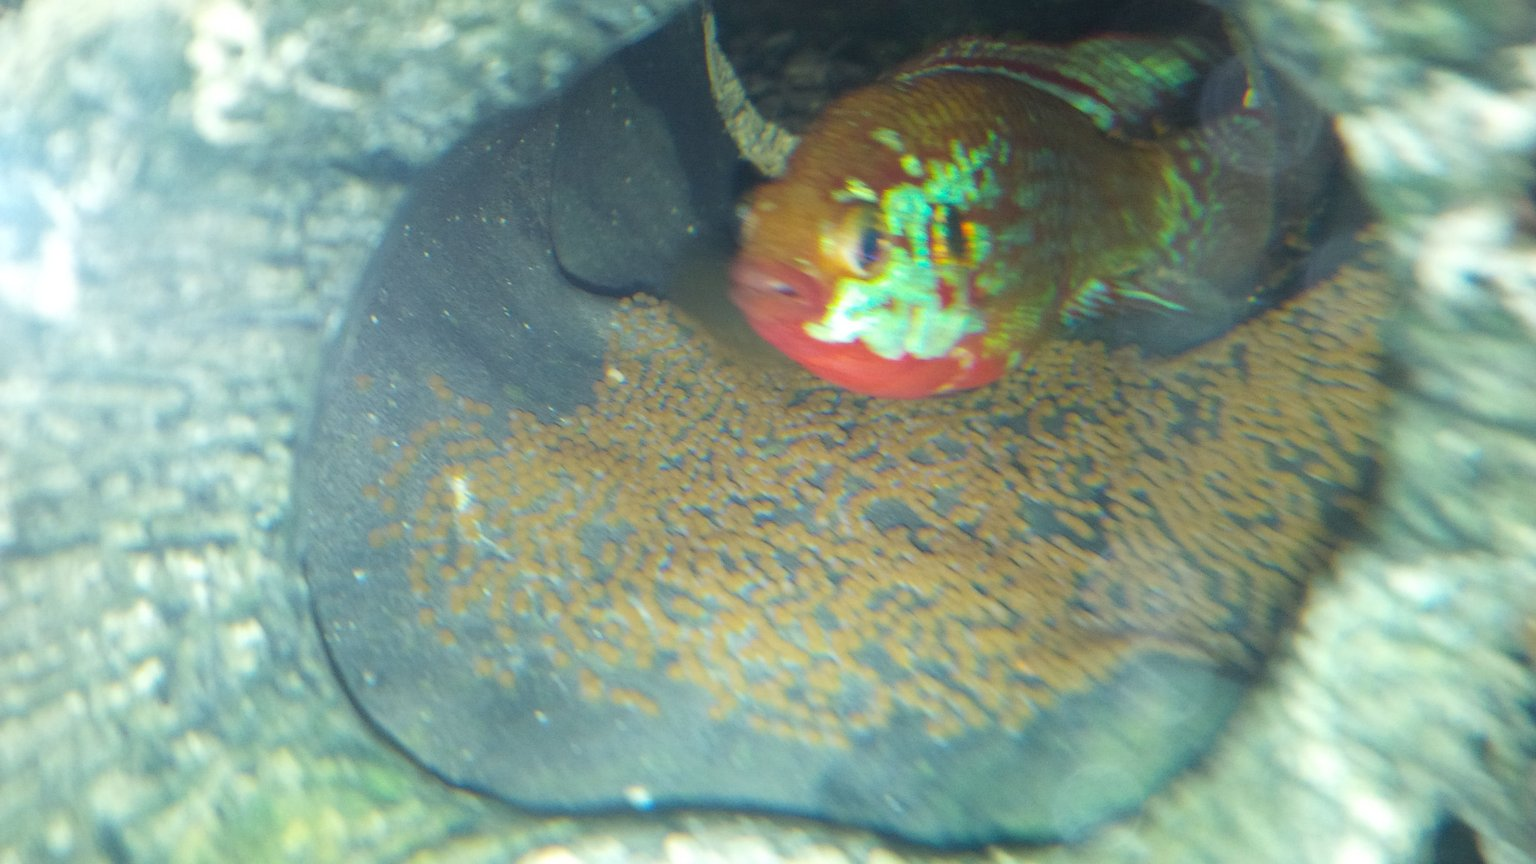 freshwater fish - hemichromis bimaculatus - jewel cichlid stocking in 120 gallons tank - Jewel with her eggs